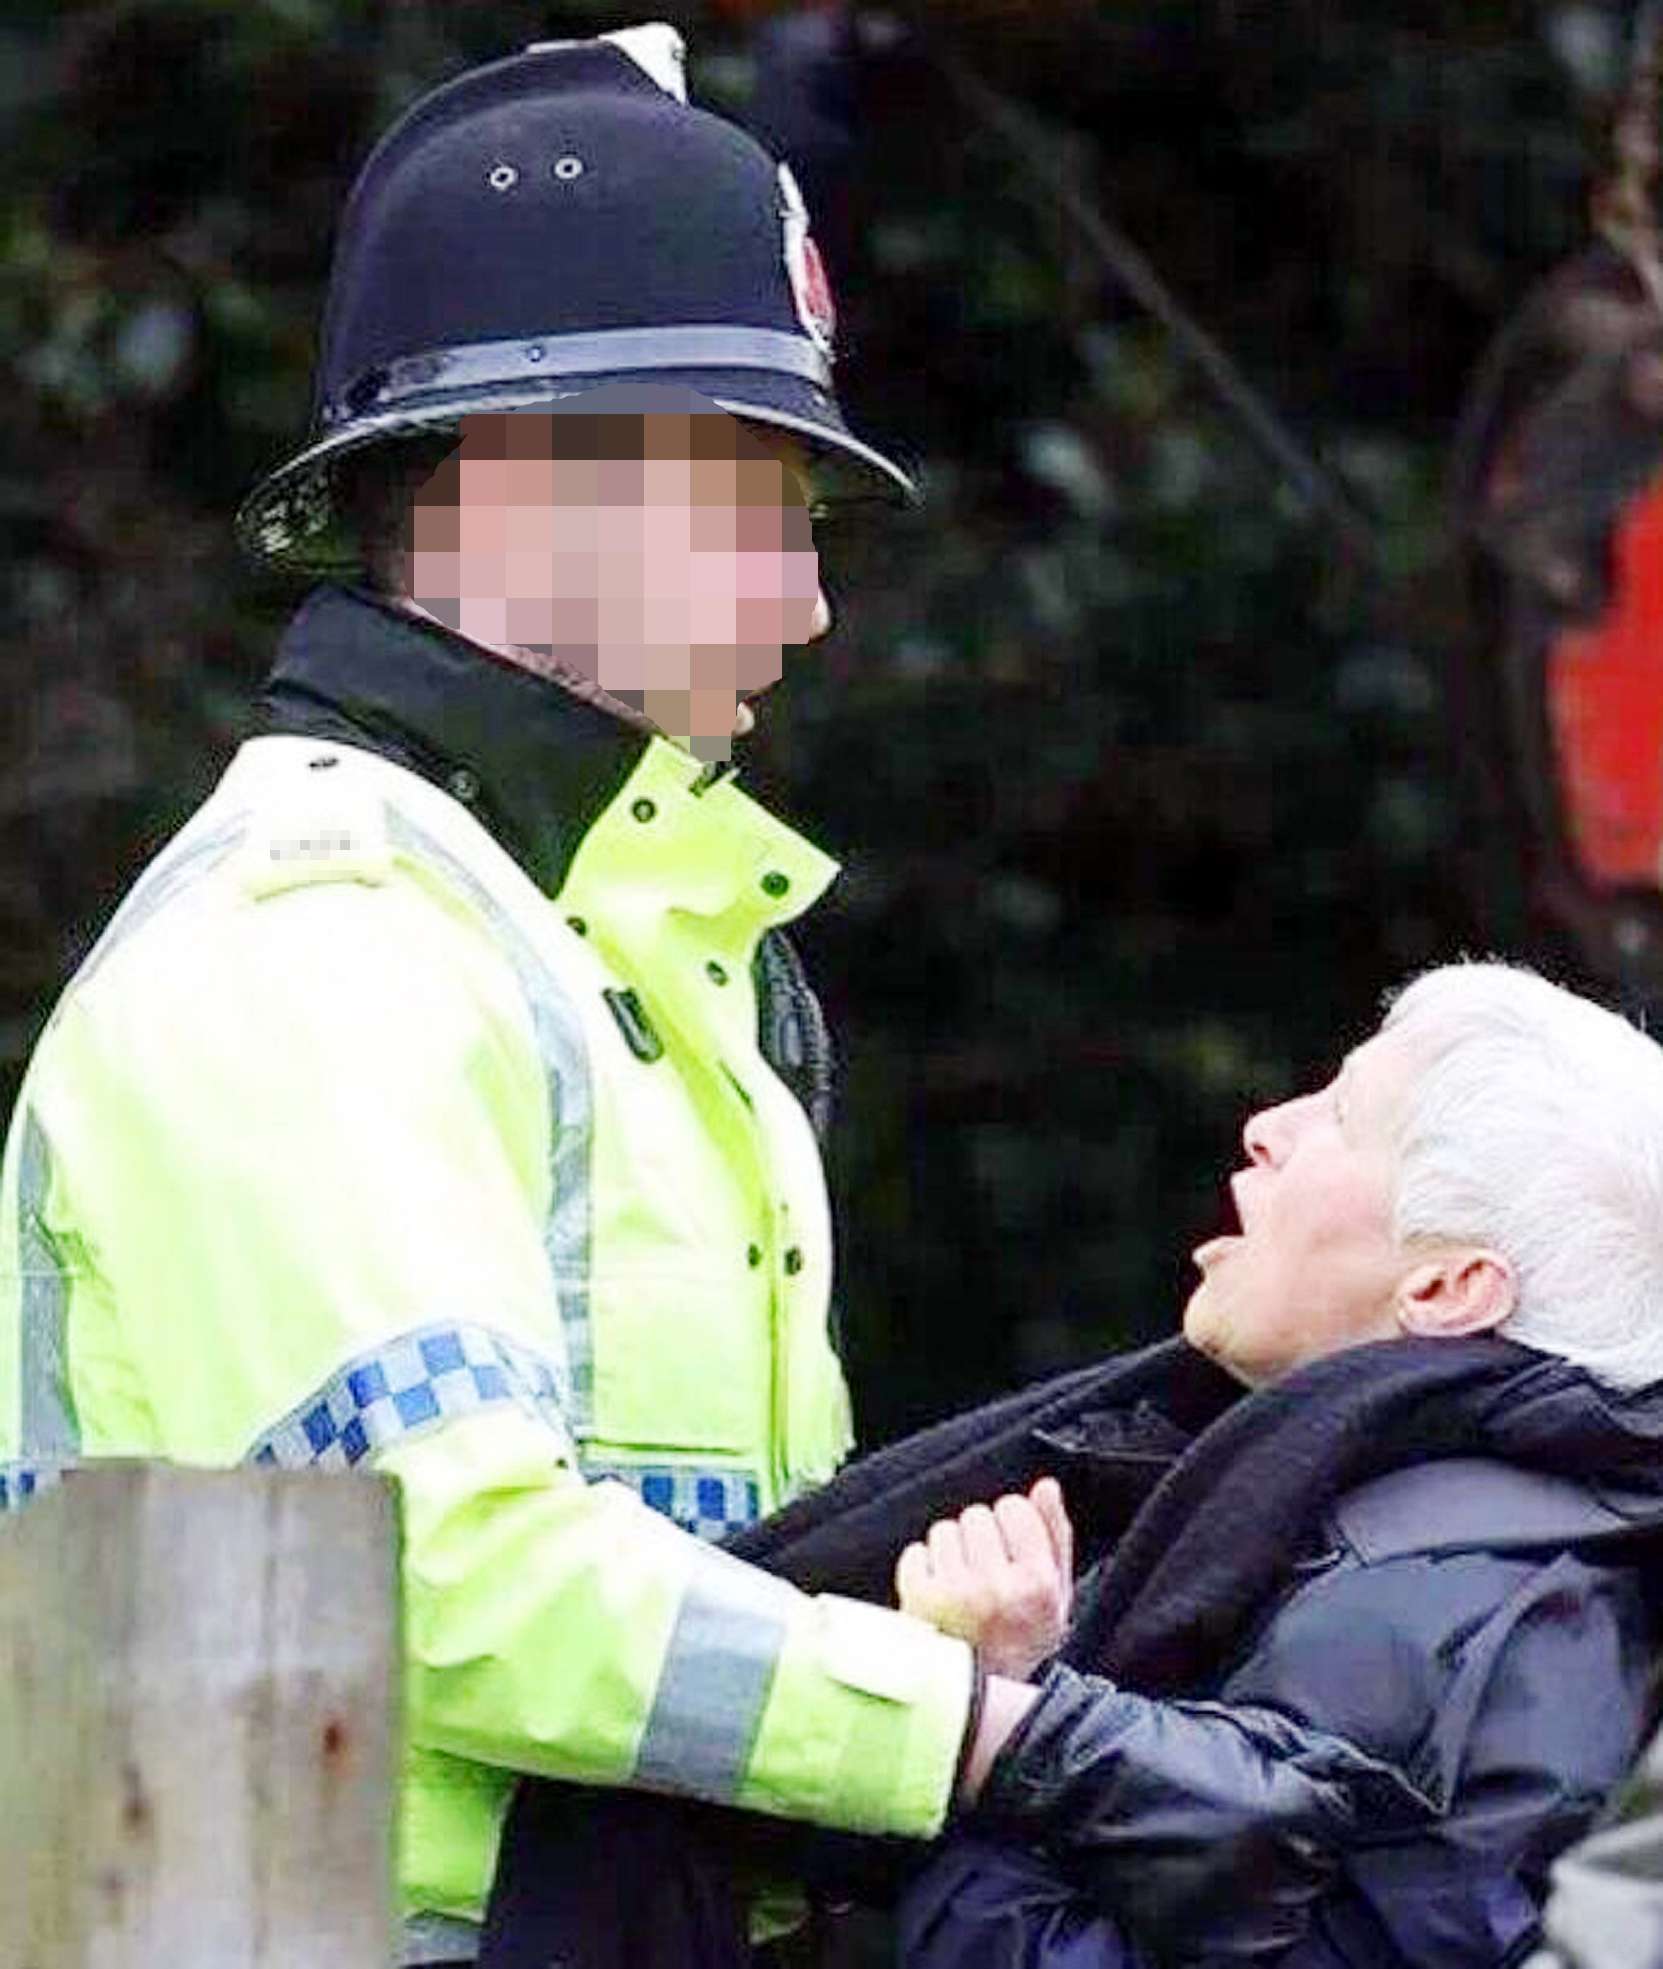 Anti-fracking protester Judy Paskell from Bury claims she was manhandled by a GMP police officer